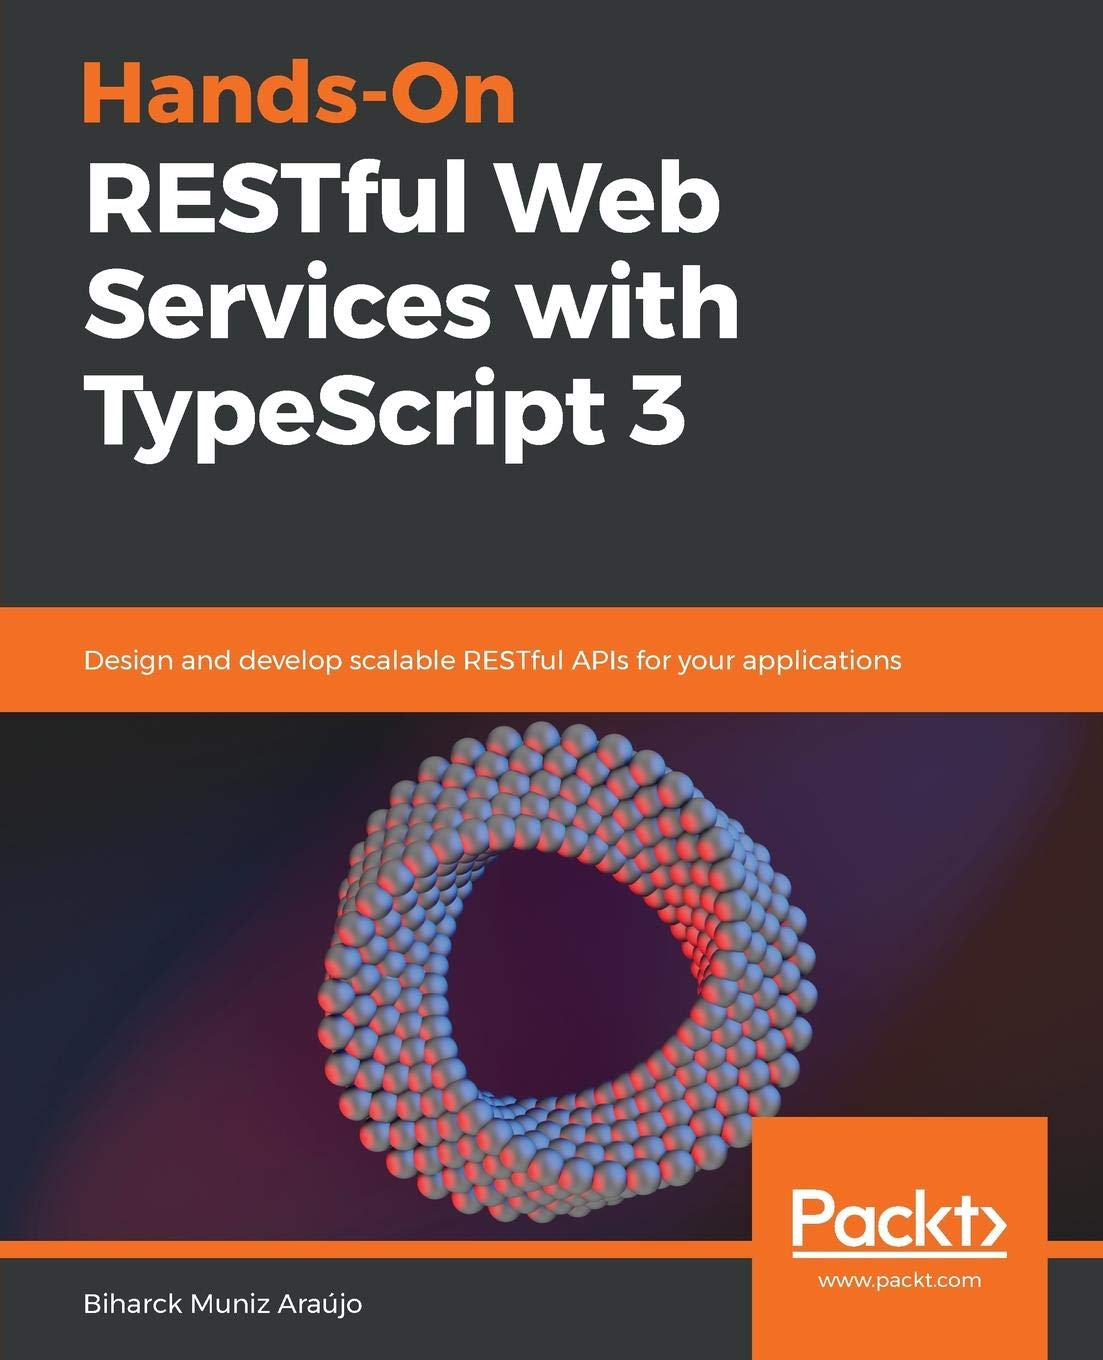 Hands-On RESTful Web Services with TypeScript 3: Design and